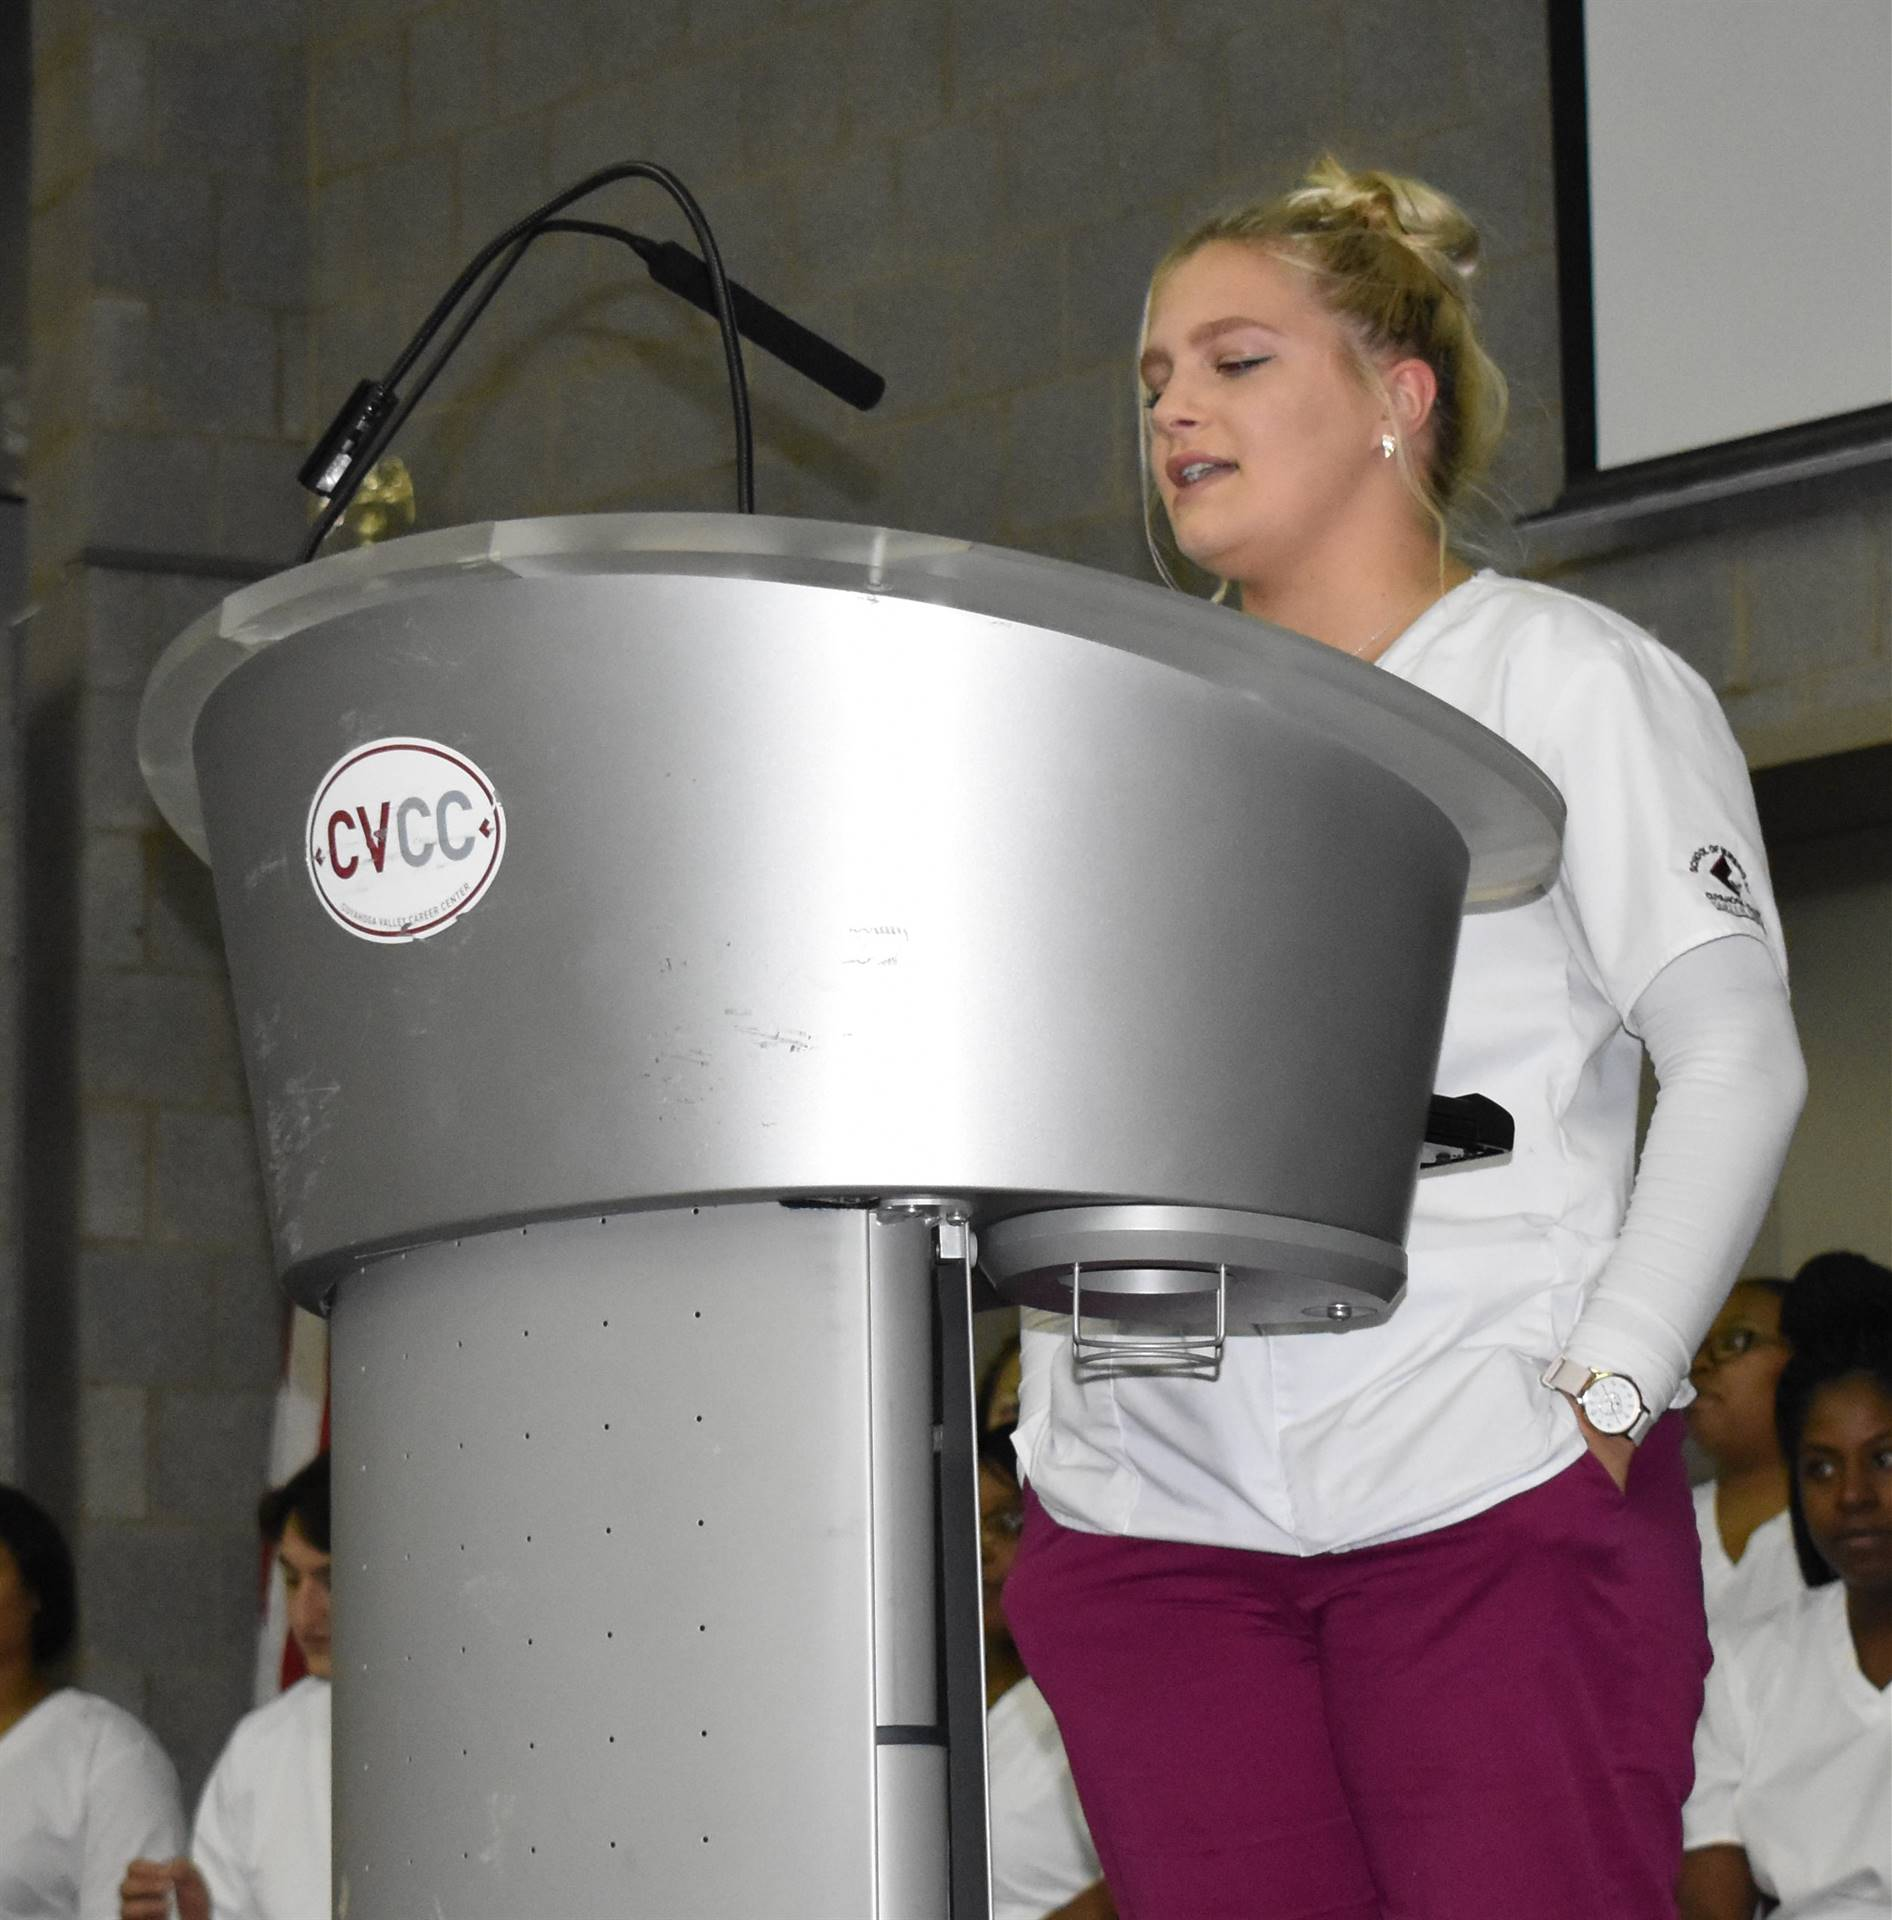 nursing student at podium